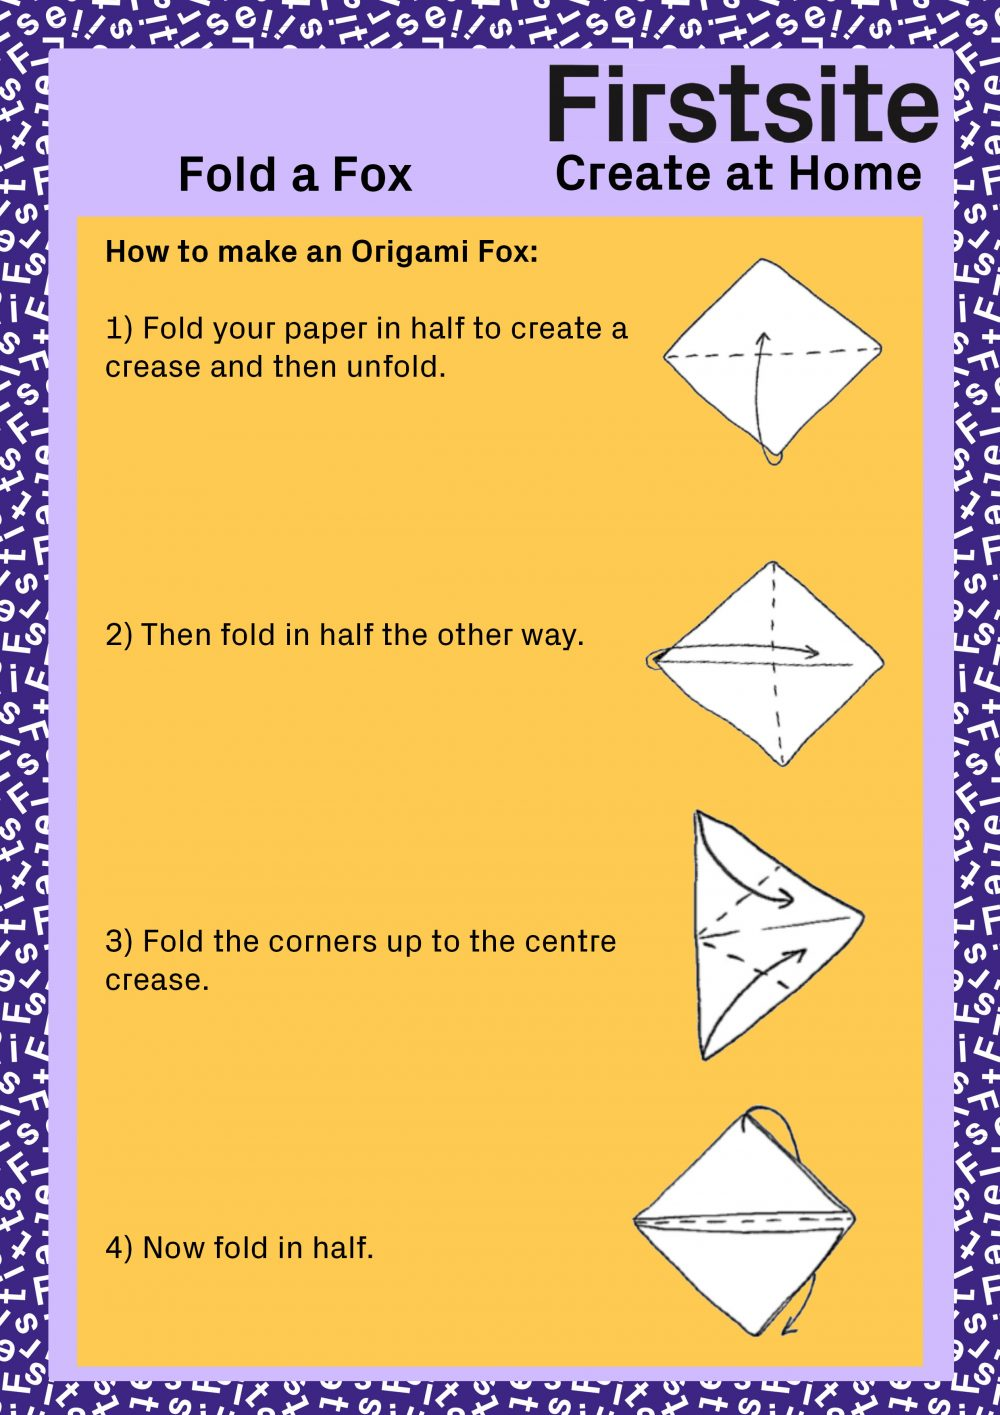 Firstsite Create at Home Fold a Friend Instructions pg 4 of 5